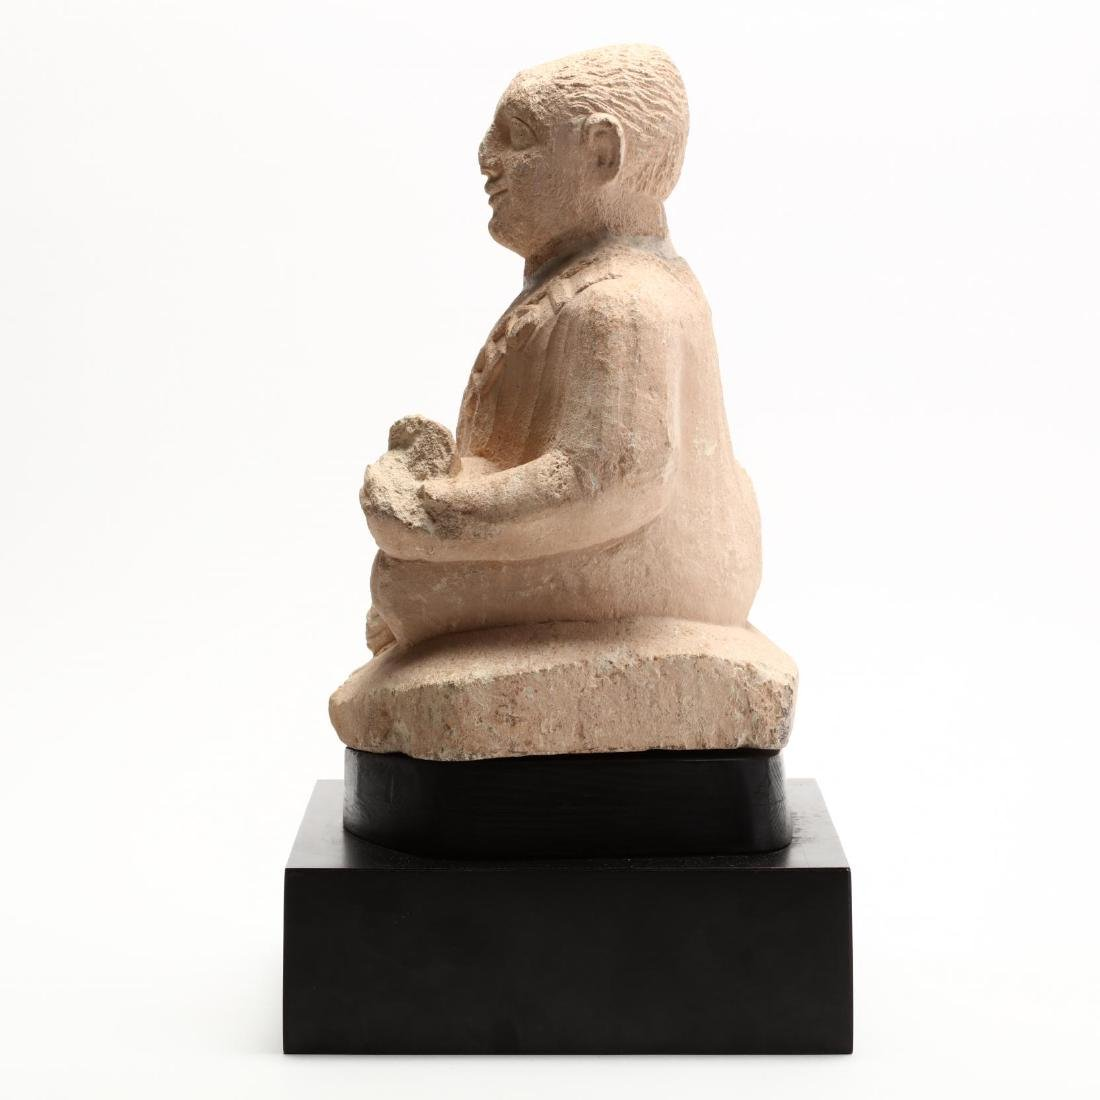 Cypriot Seated Limestone Figure, Ex. Cesnola Collection - 6